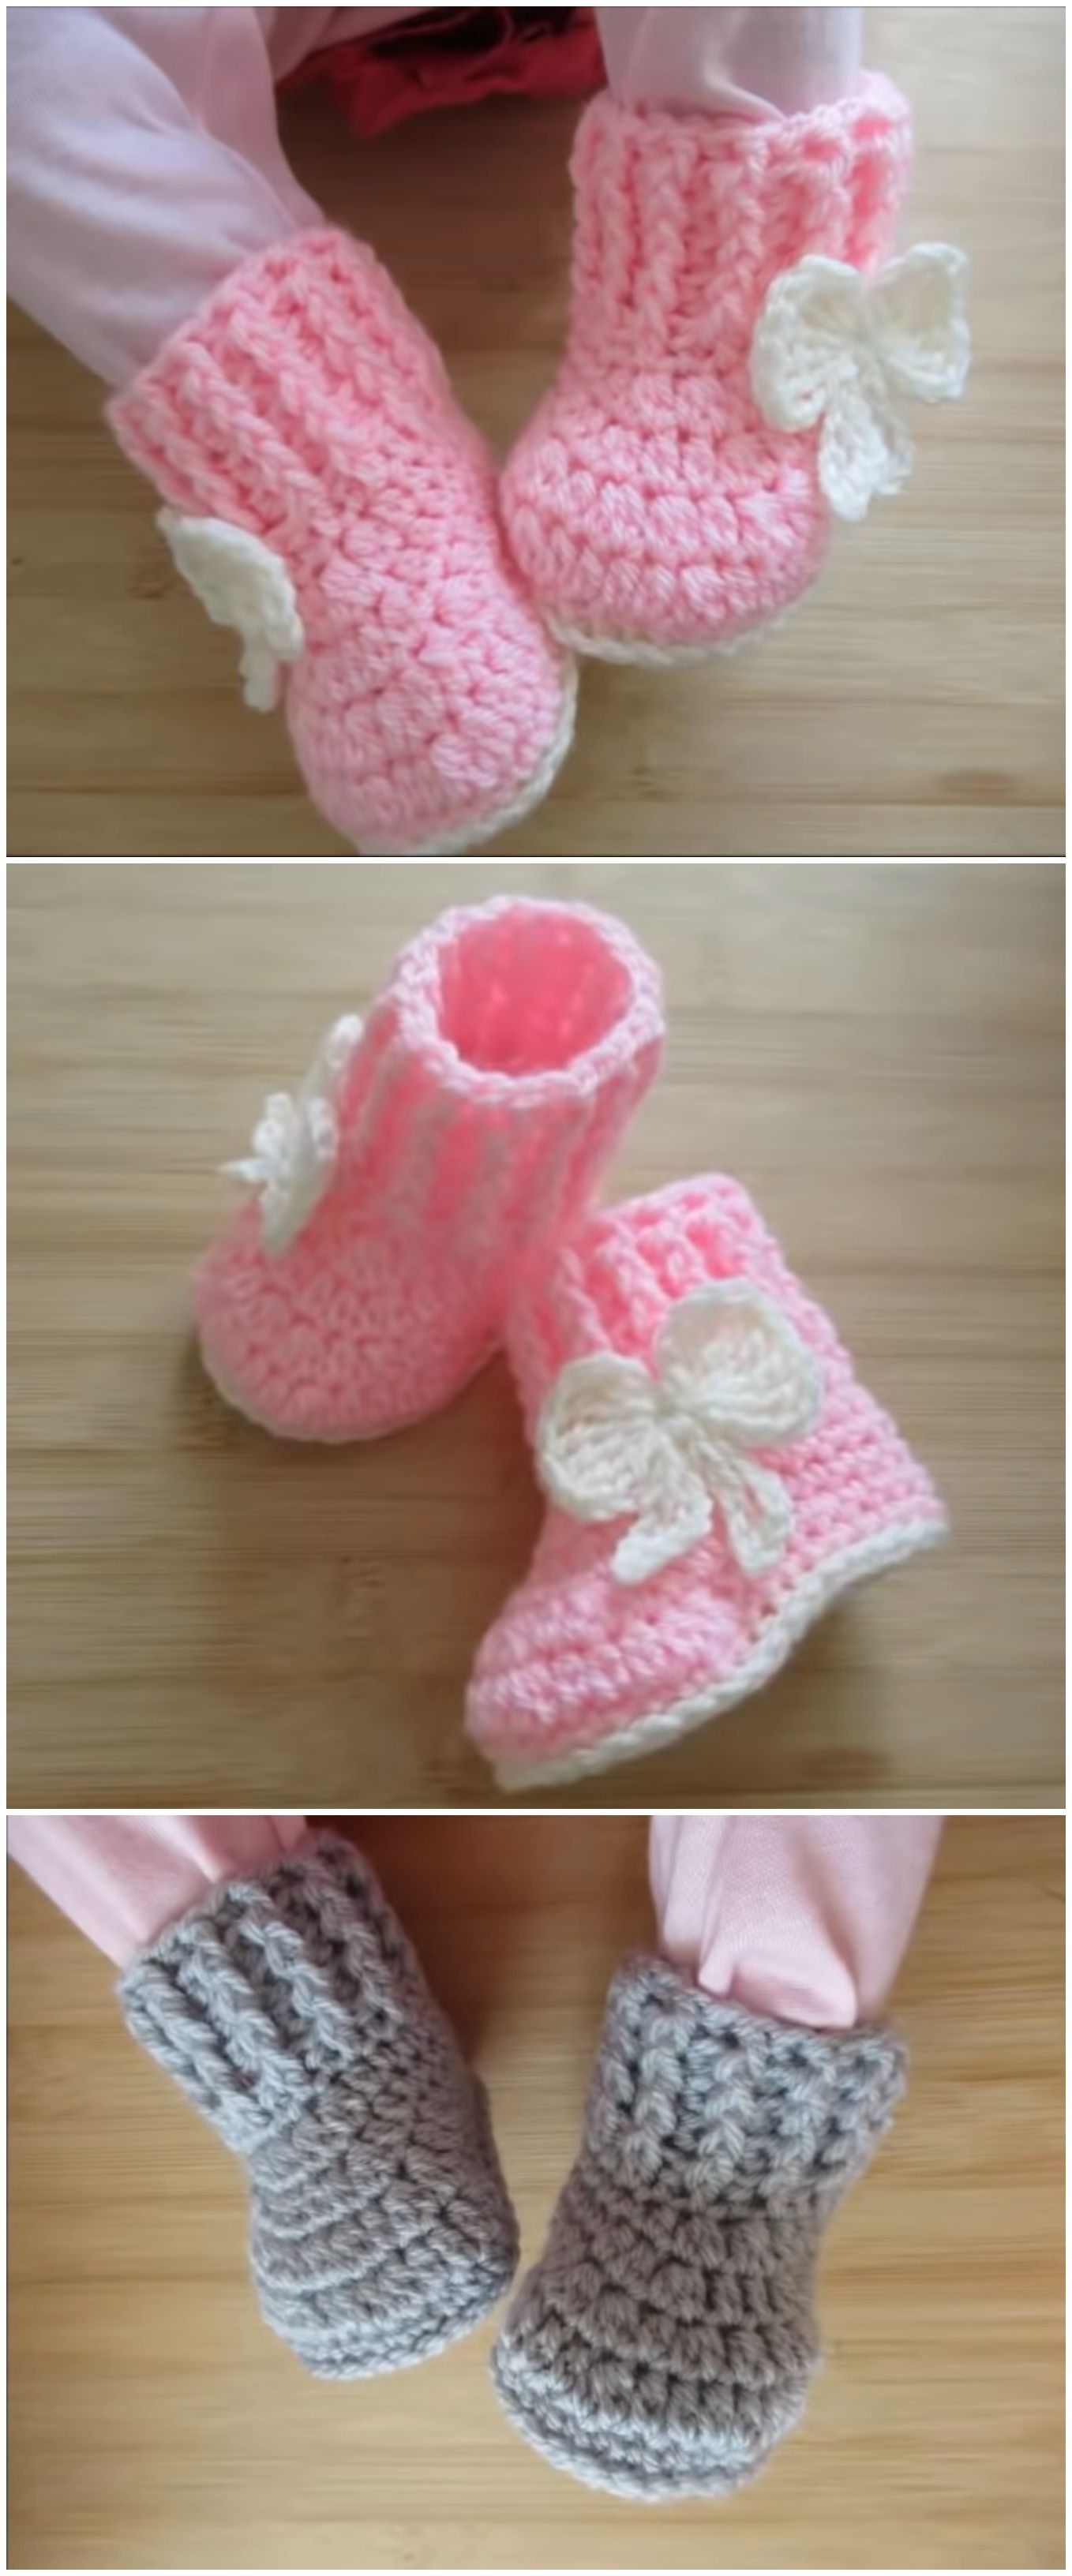 Crochet Fast And Easy Baby Booties #crochetbabyboots